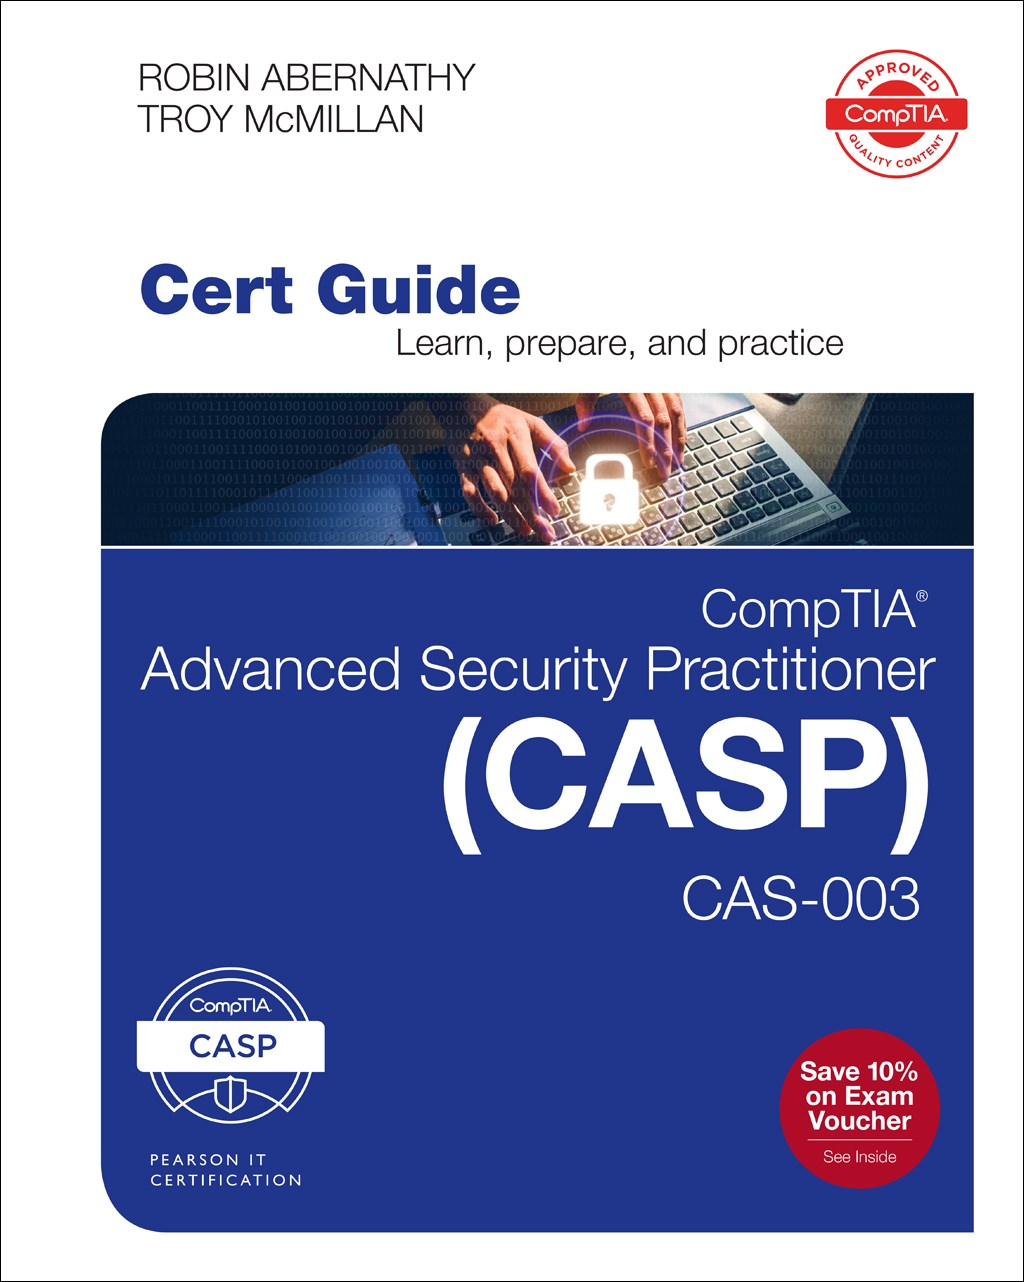 CompTIA Advanced Security Practitioner (CASP) CAS-003 Cert Guide, 2nd Edition